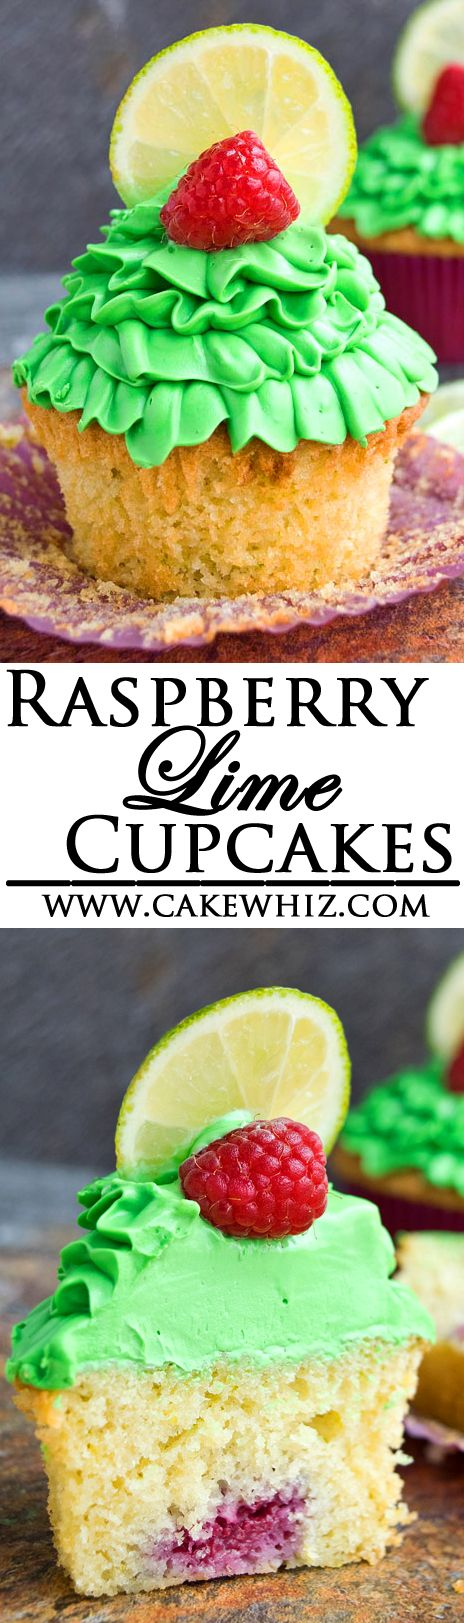 These soft and buttery RASPBERRY LIME CUPCAKES with zesty lime frosting are really easy to make! Each cupcake is also stuffed with a fresh raspberry! Perfect for Spring and Summer parties! {Ad} From cakewhiz.com